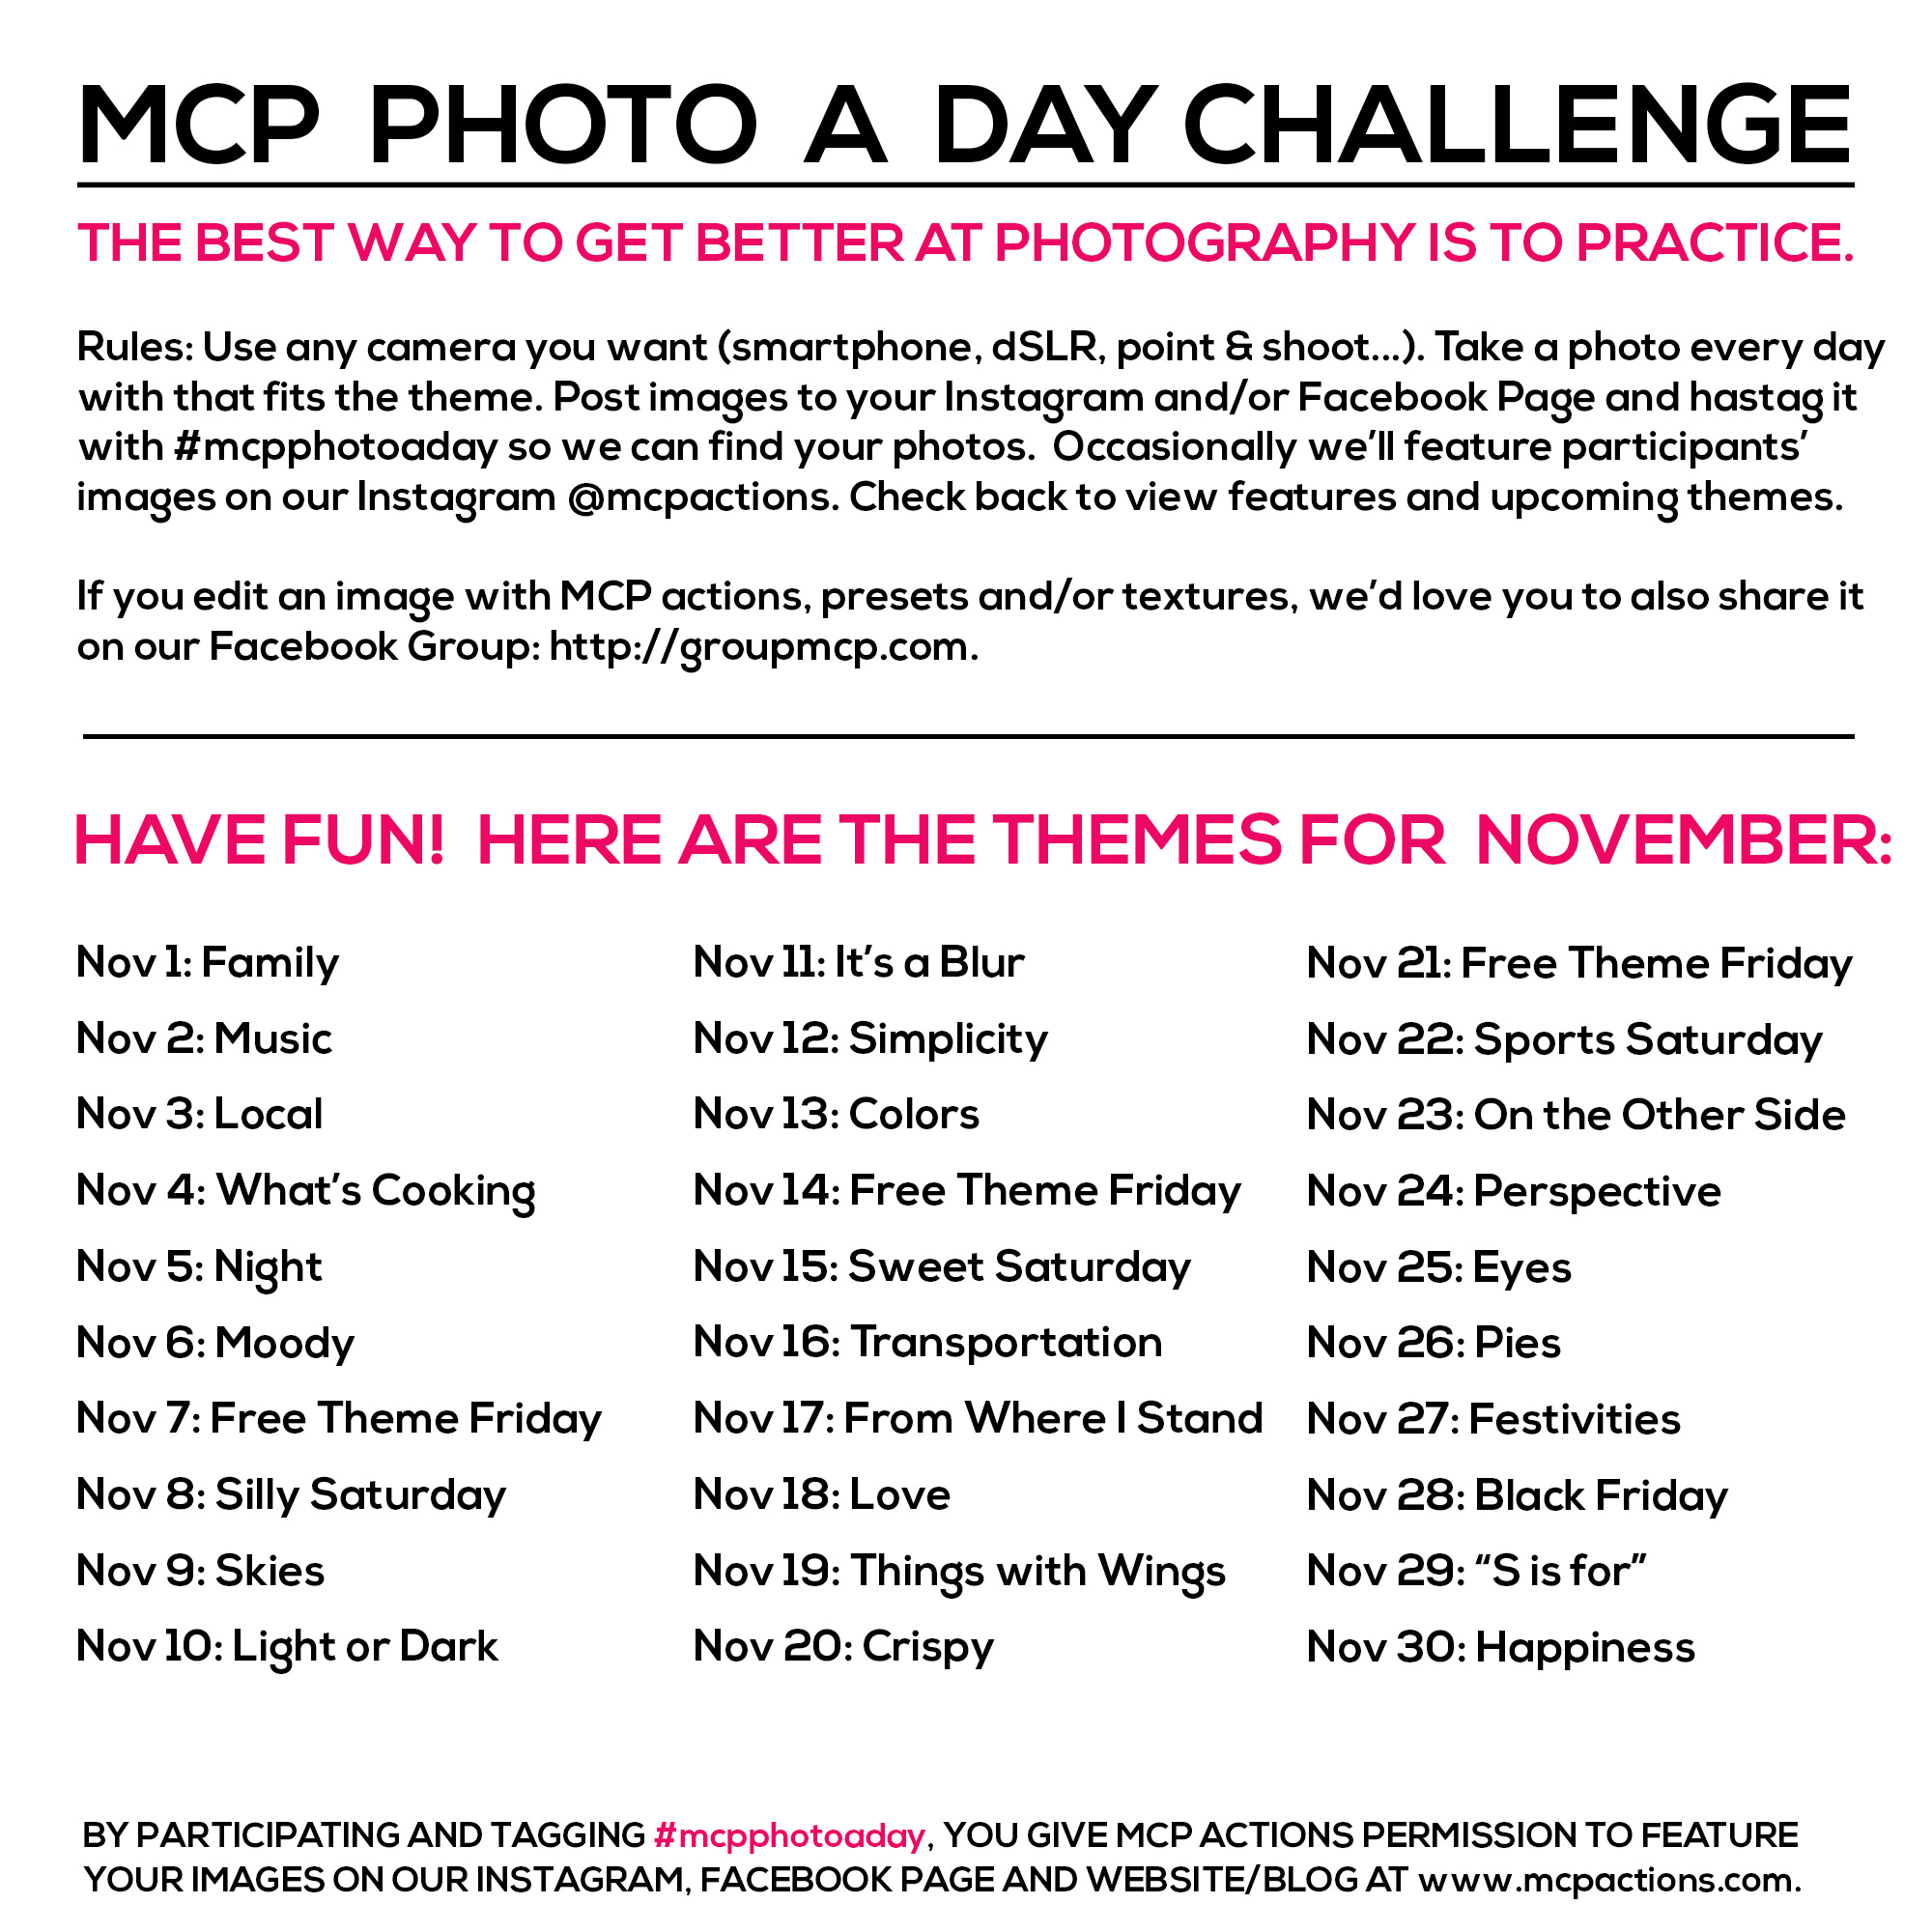 mcpphotoaday-november MCP Photo A Day Challenge: November 2015 Themes Activities Announcements Assignments